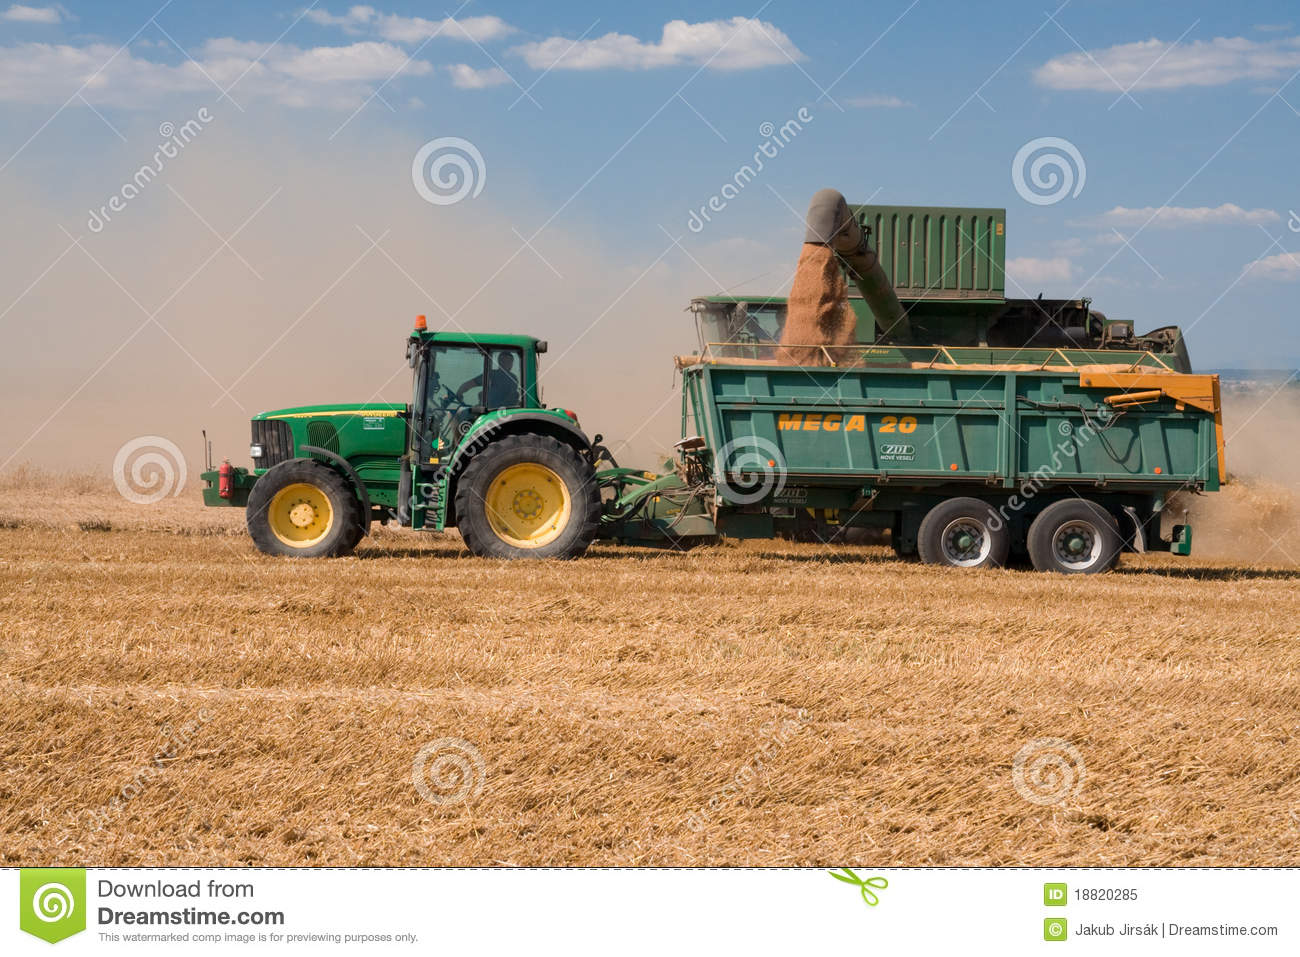 Tractor And Combine John Deere On Harvested Field